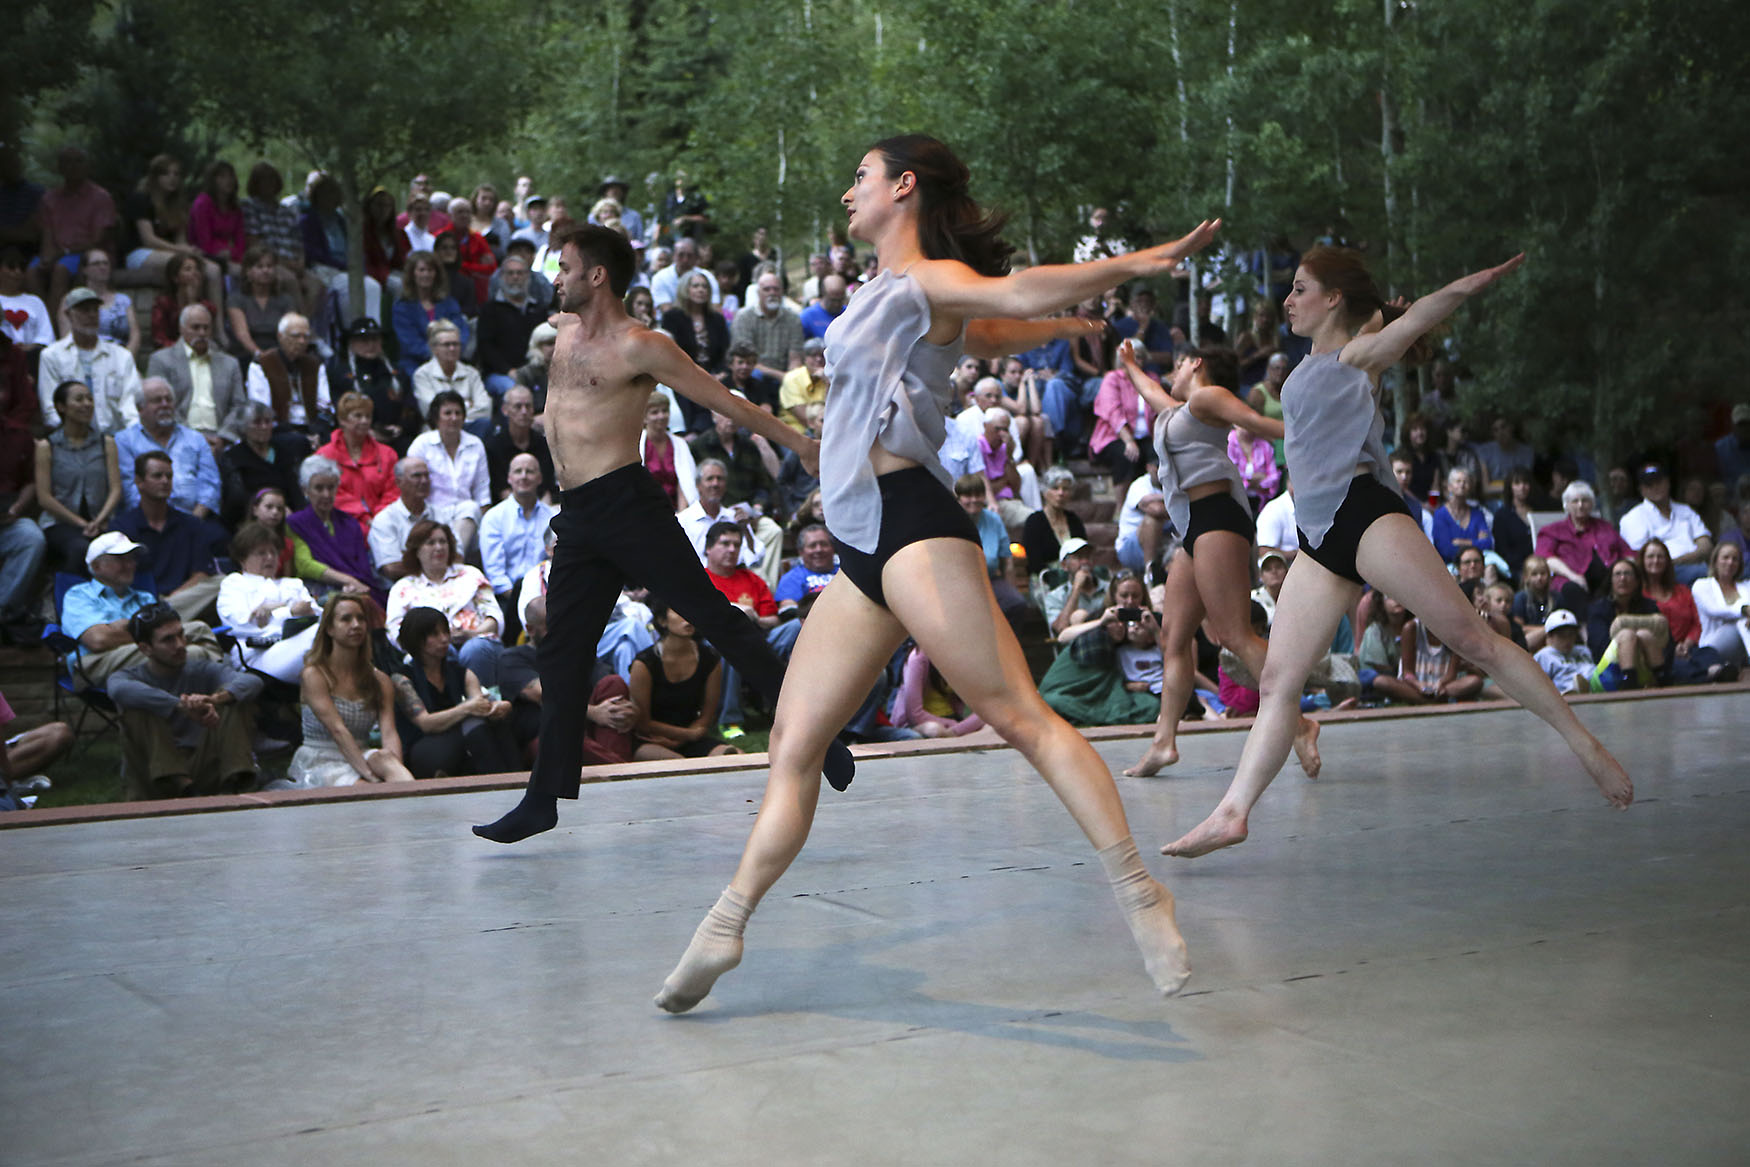 A performance by Keigwin + Company at the festival. Image courtesy Green Box Arts Festival.